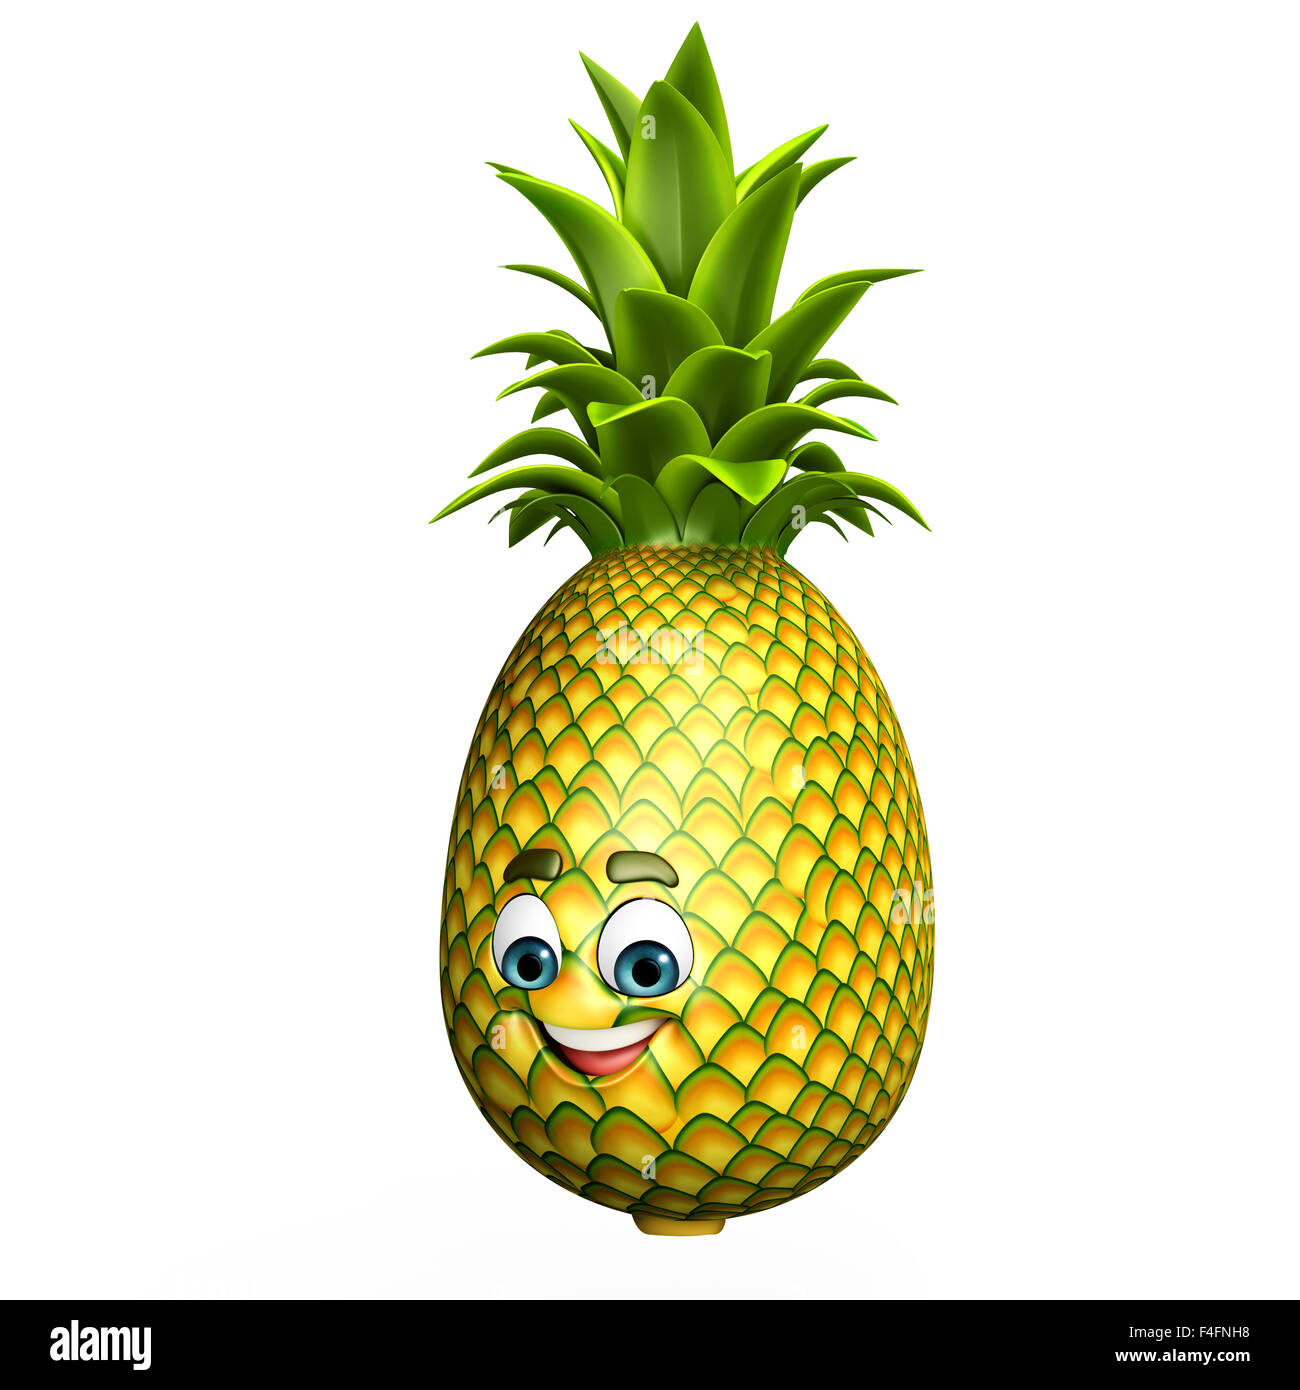 3d Rendered Illustration Of Pineapple Cartoon Character Stock Photo Alamy Check out our pineapple cartoon selection for the very best in unique or custom, handmade pieces from our digital shops. https www alamy com stock photo 3d rendered illustration of pineapple cartoon character 88856692 html